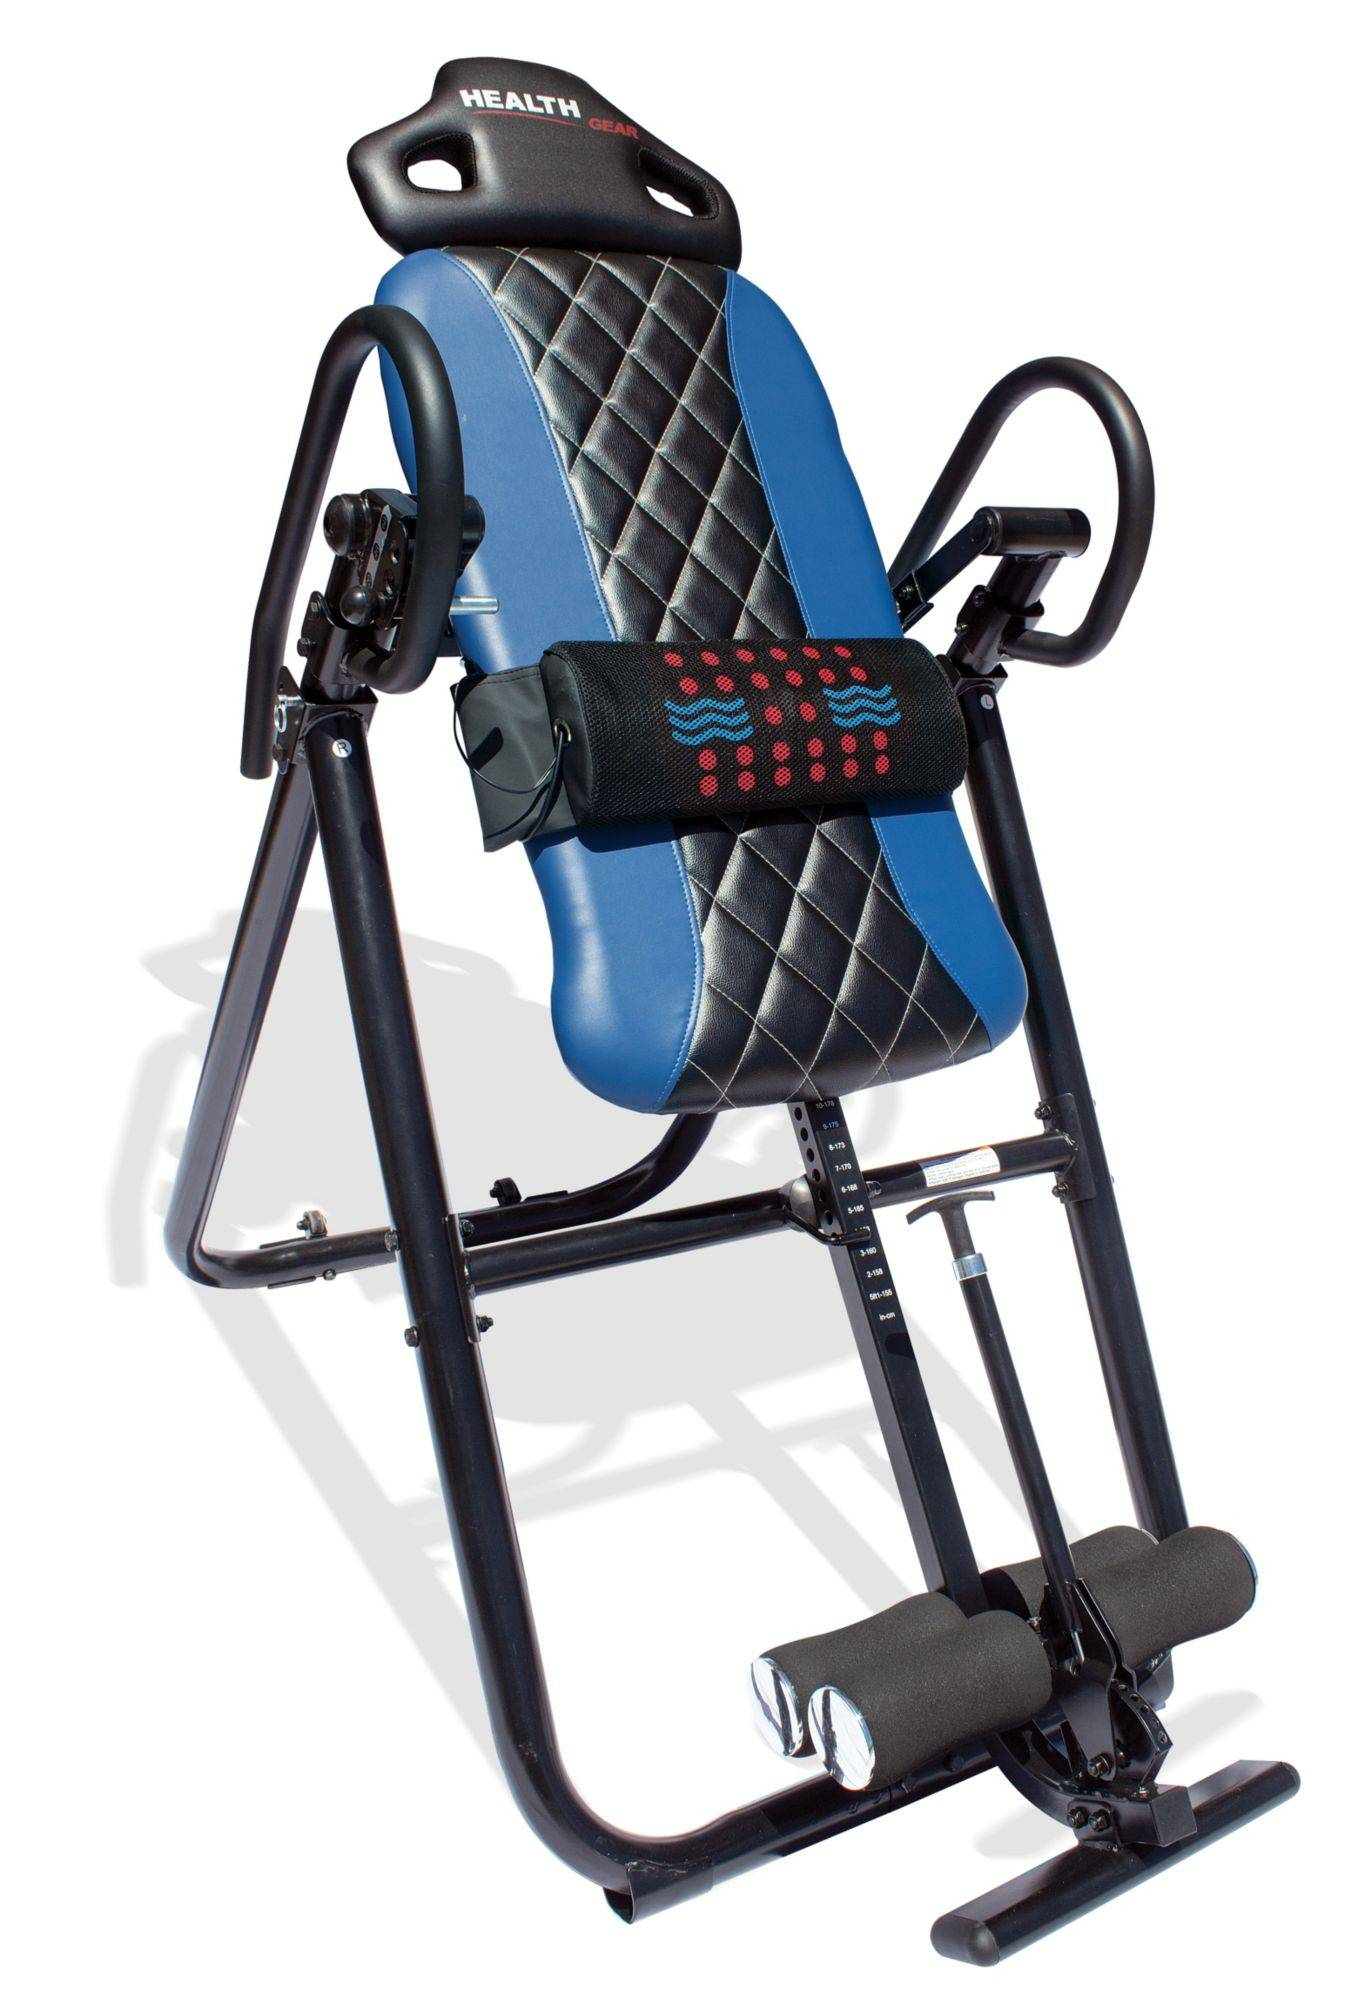 Health Gear Deluxe Heat and Massage Inversion Table, Blue